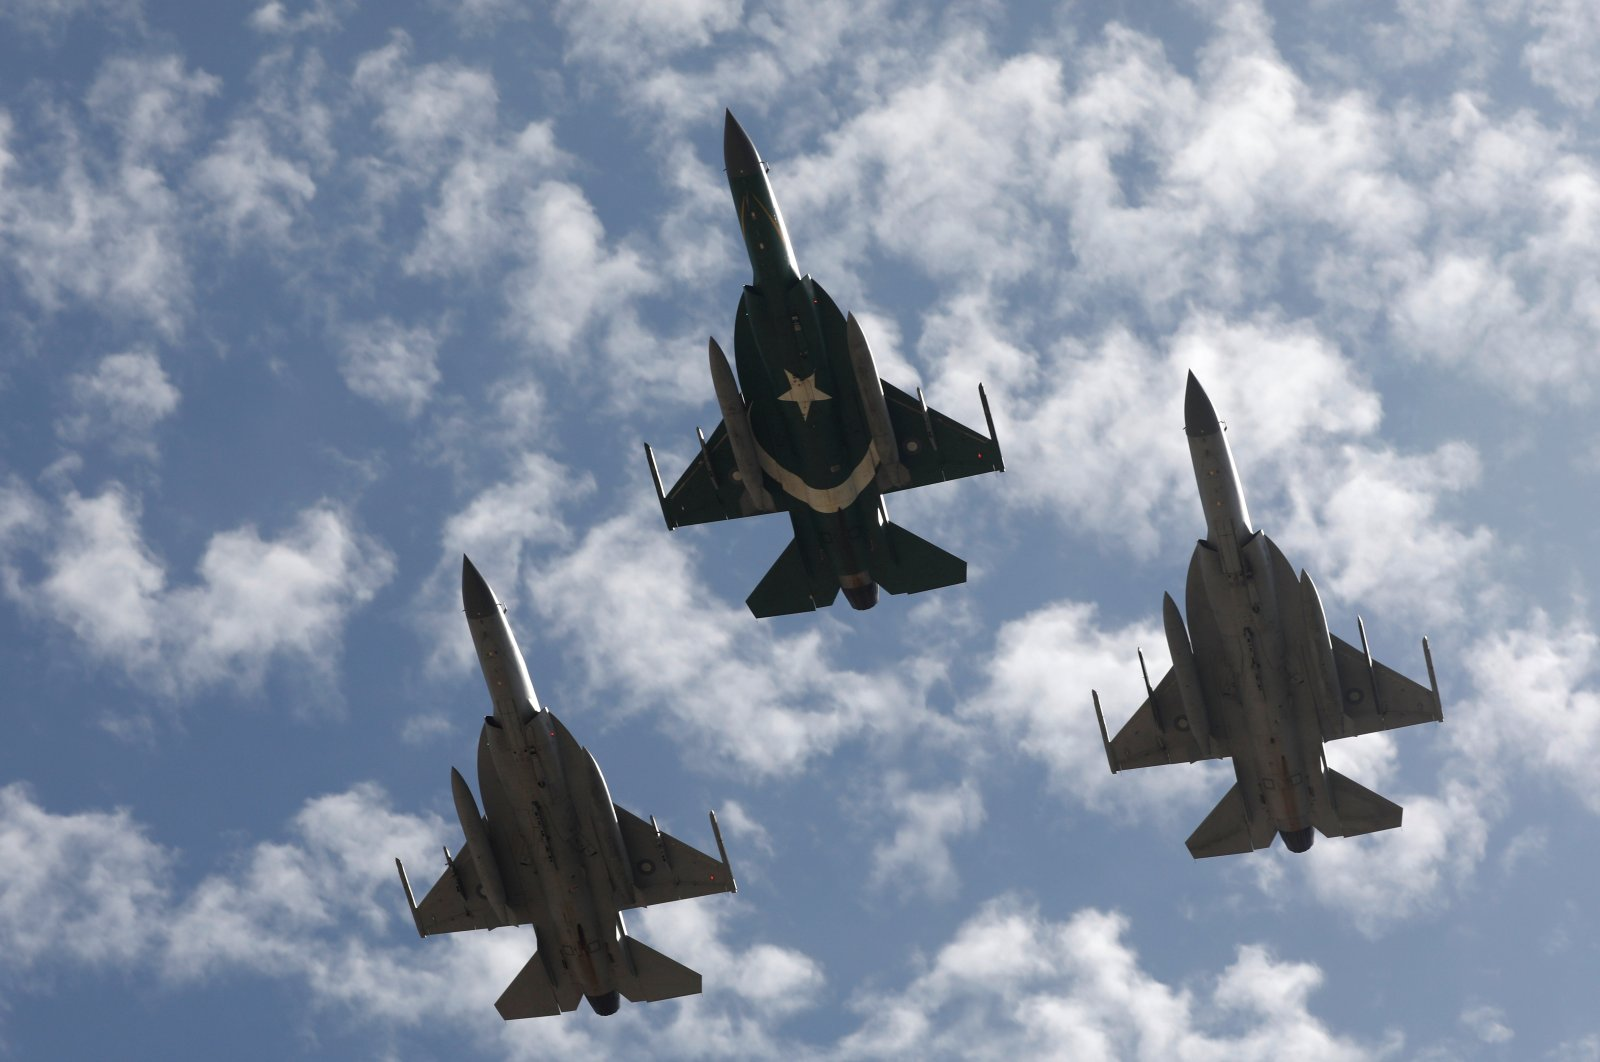 Pakistan Air Force (PAF) JF-17 Thunder jets perform to commemorate Pakistan Air Force's 'Operation Swift Retort', following the shot down of Indian military aircrafts on February 27, 2019 in Kashmir, during an air show in Karachi, Pakistan February 27, 2020. (Reuters Photo)